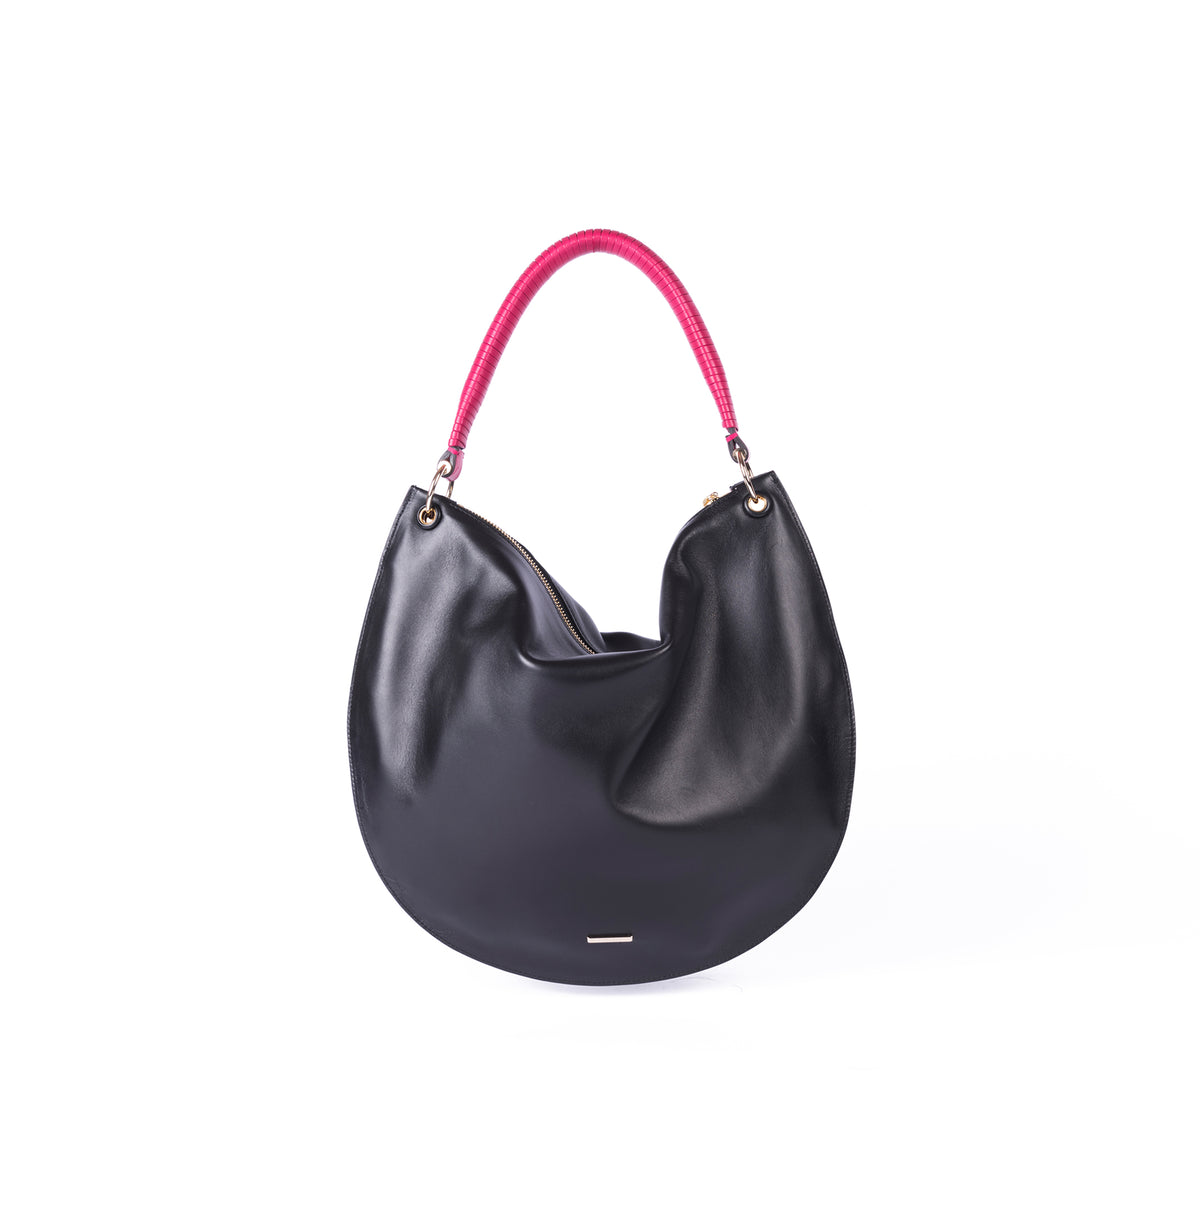 LUNA HOBO BAG BLACK